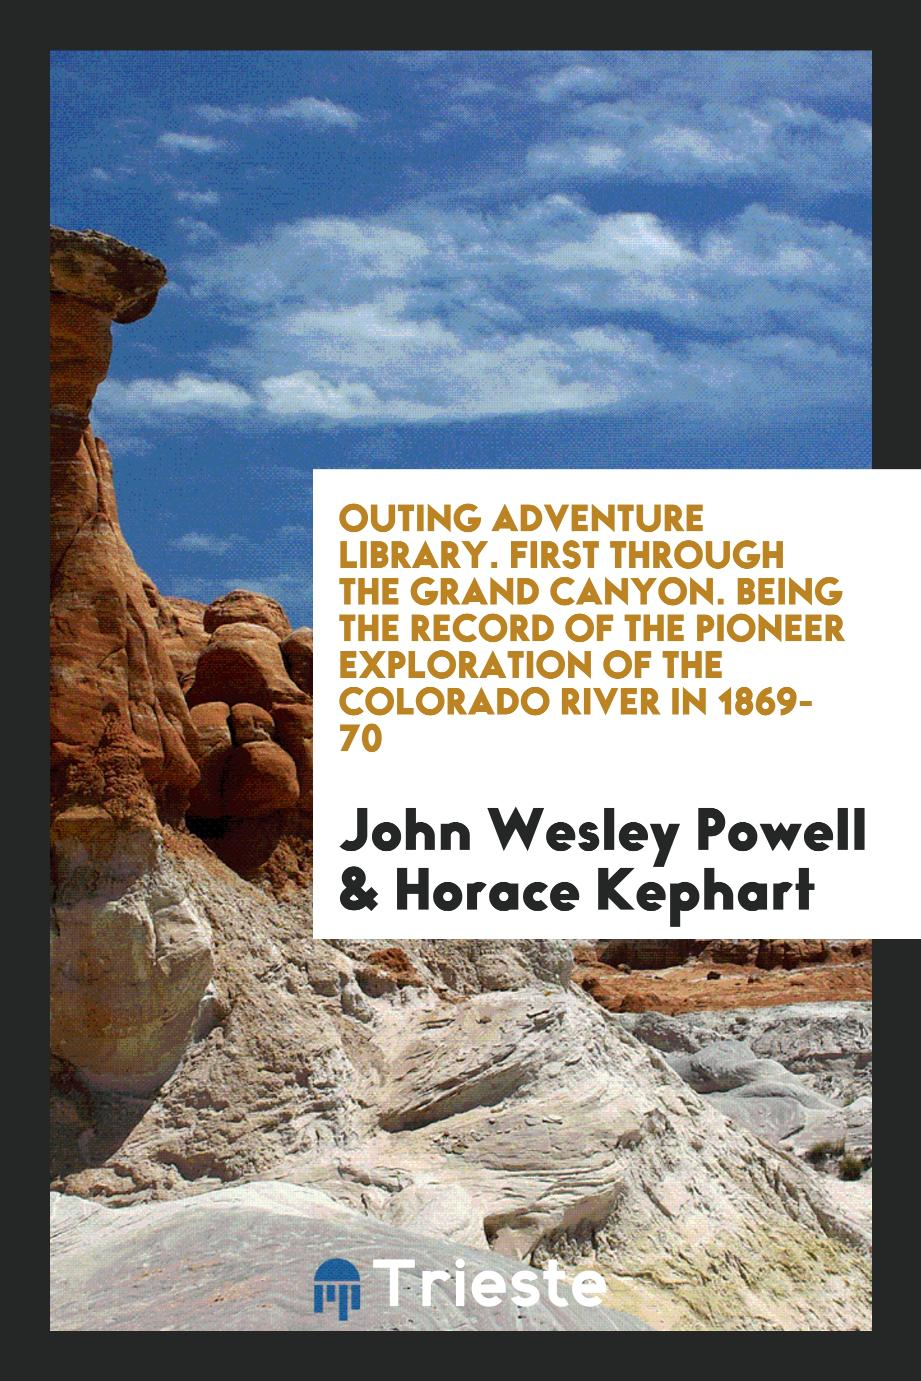 Outing Adventure Library. First Through the Grand Canyon. Being the Record of the Pioneer Exploration of the Colorado River in 1869-70